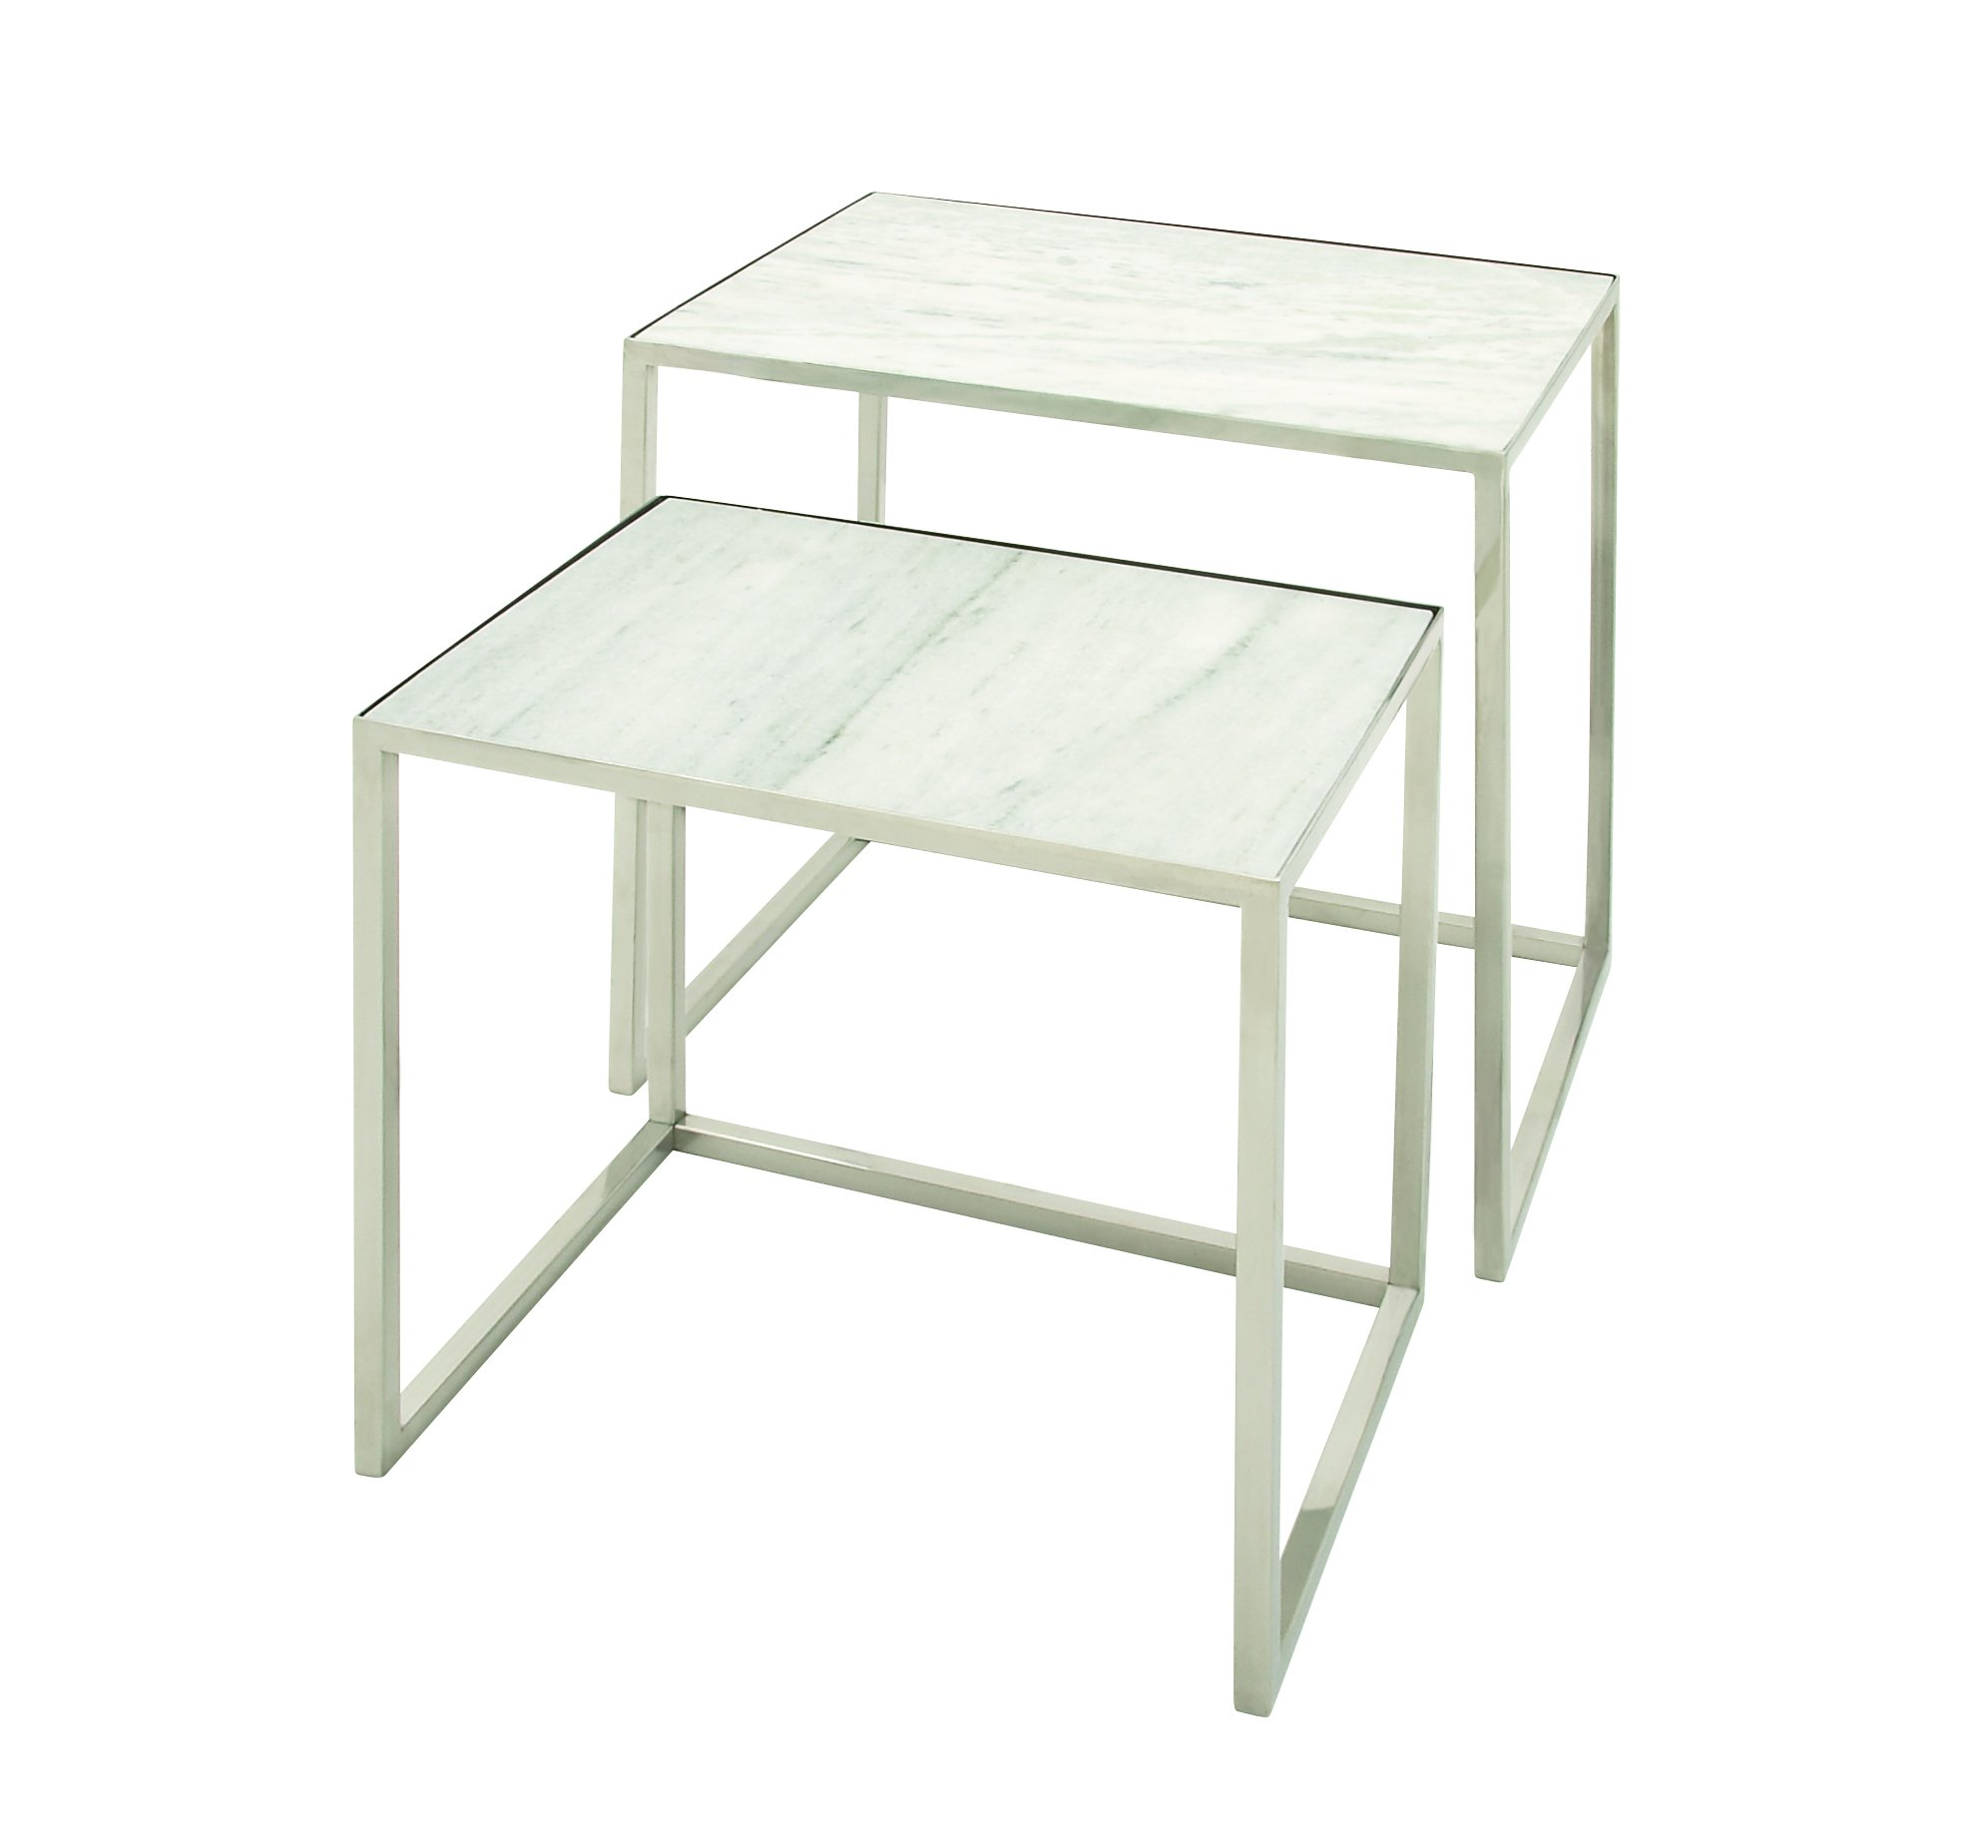 Deco 79 49605 Stainless Steel Marble Nesting Tables (Set of 2), 24''/20''